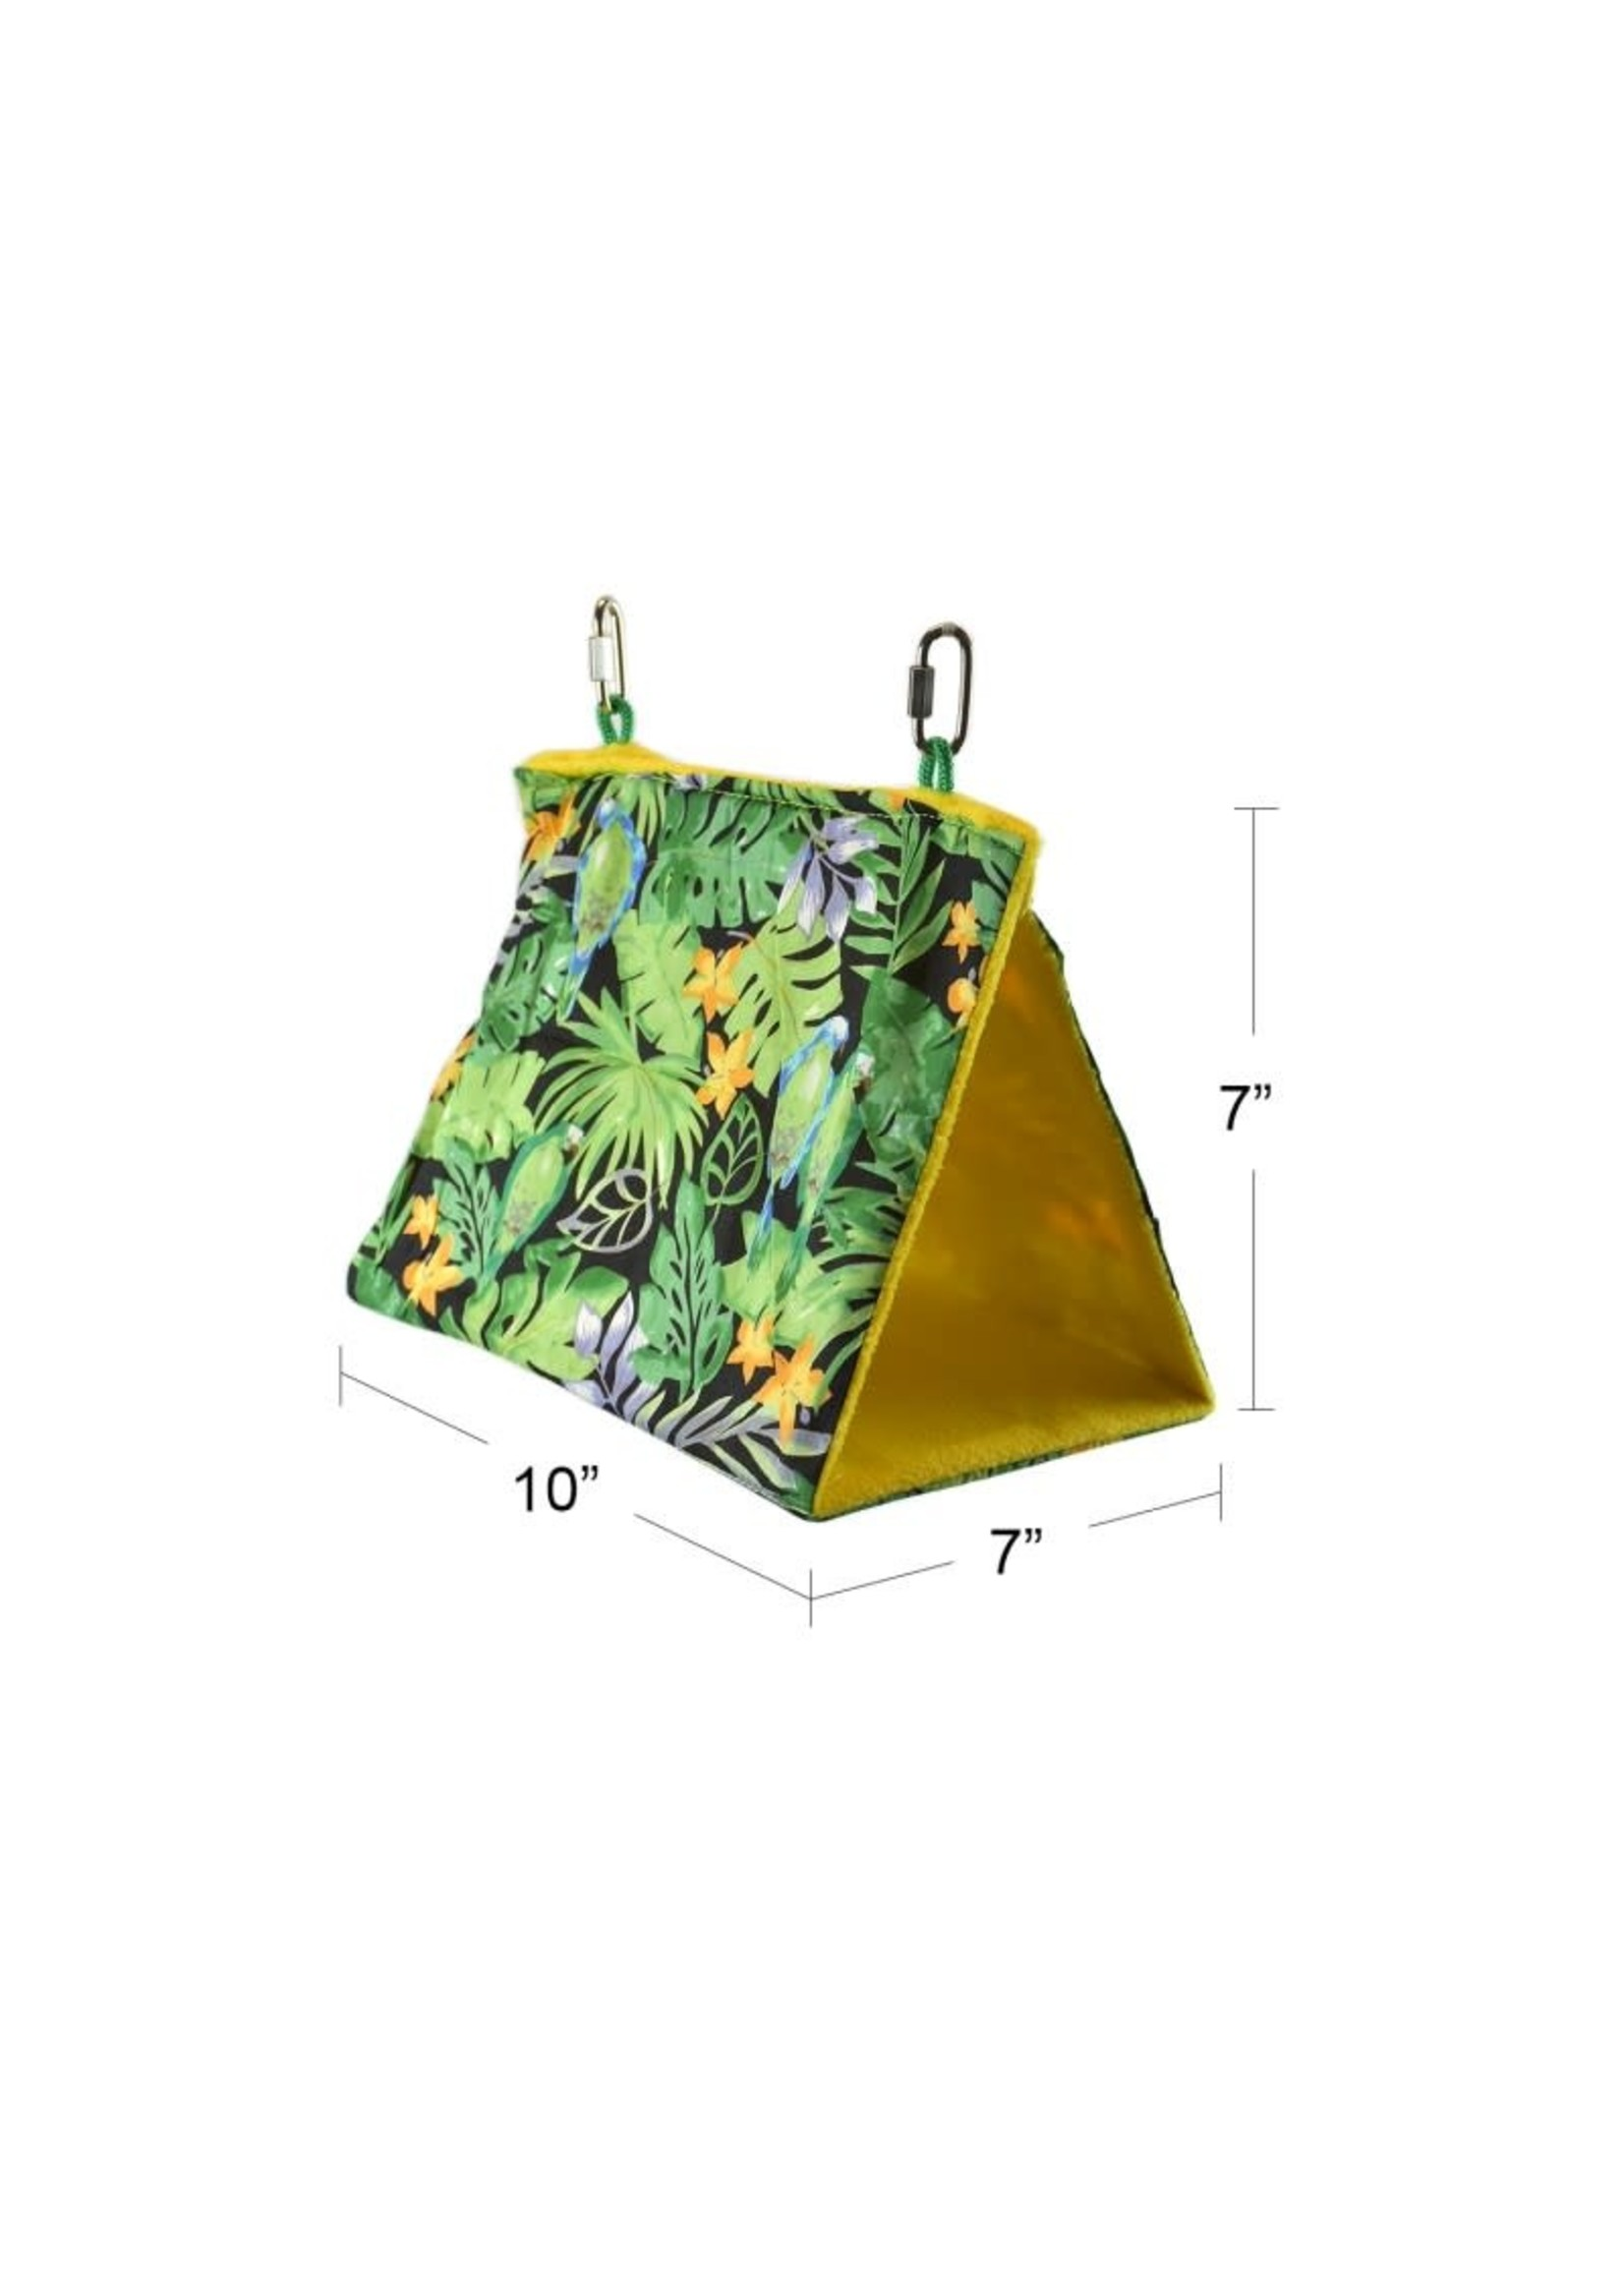 Jolly Jungle GP Large Fabric Tent A856-4